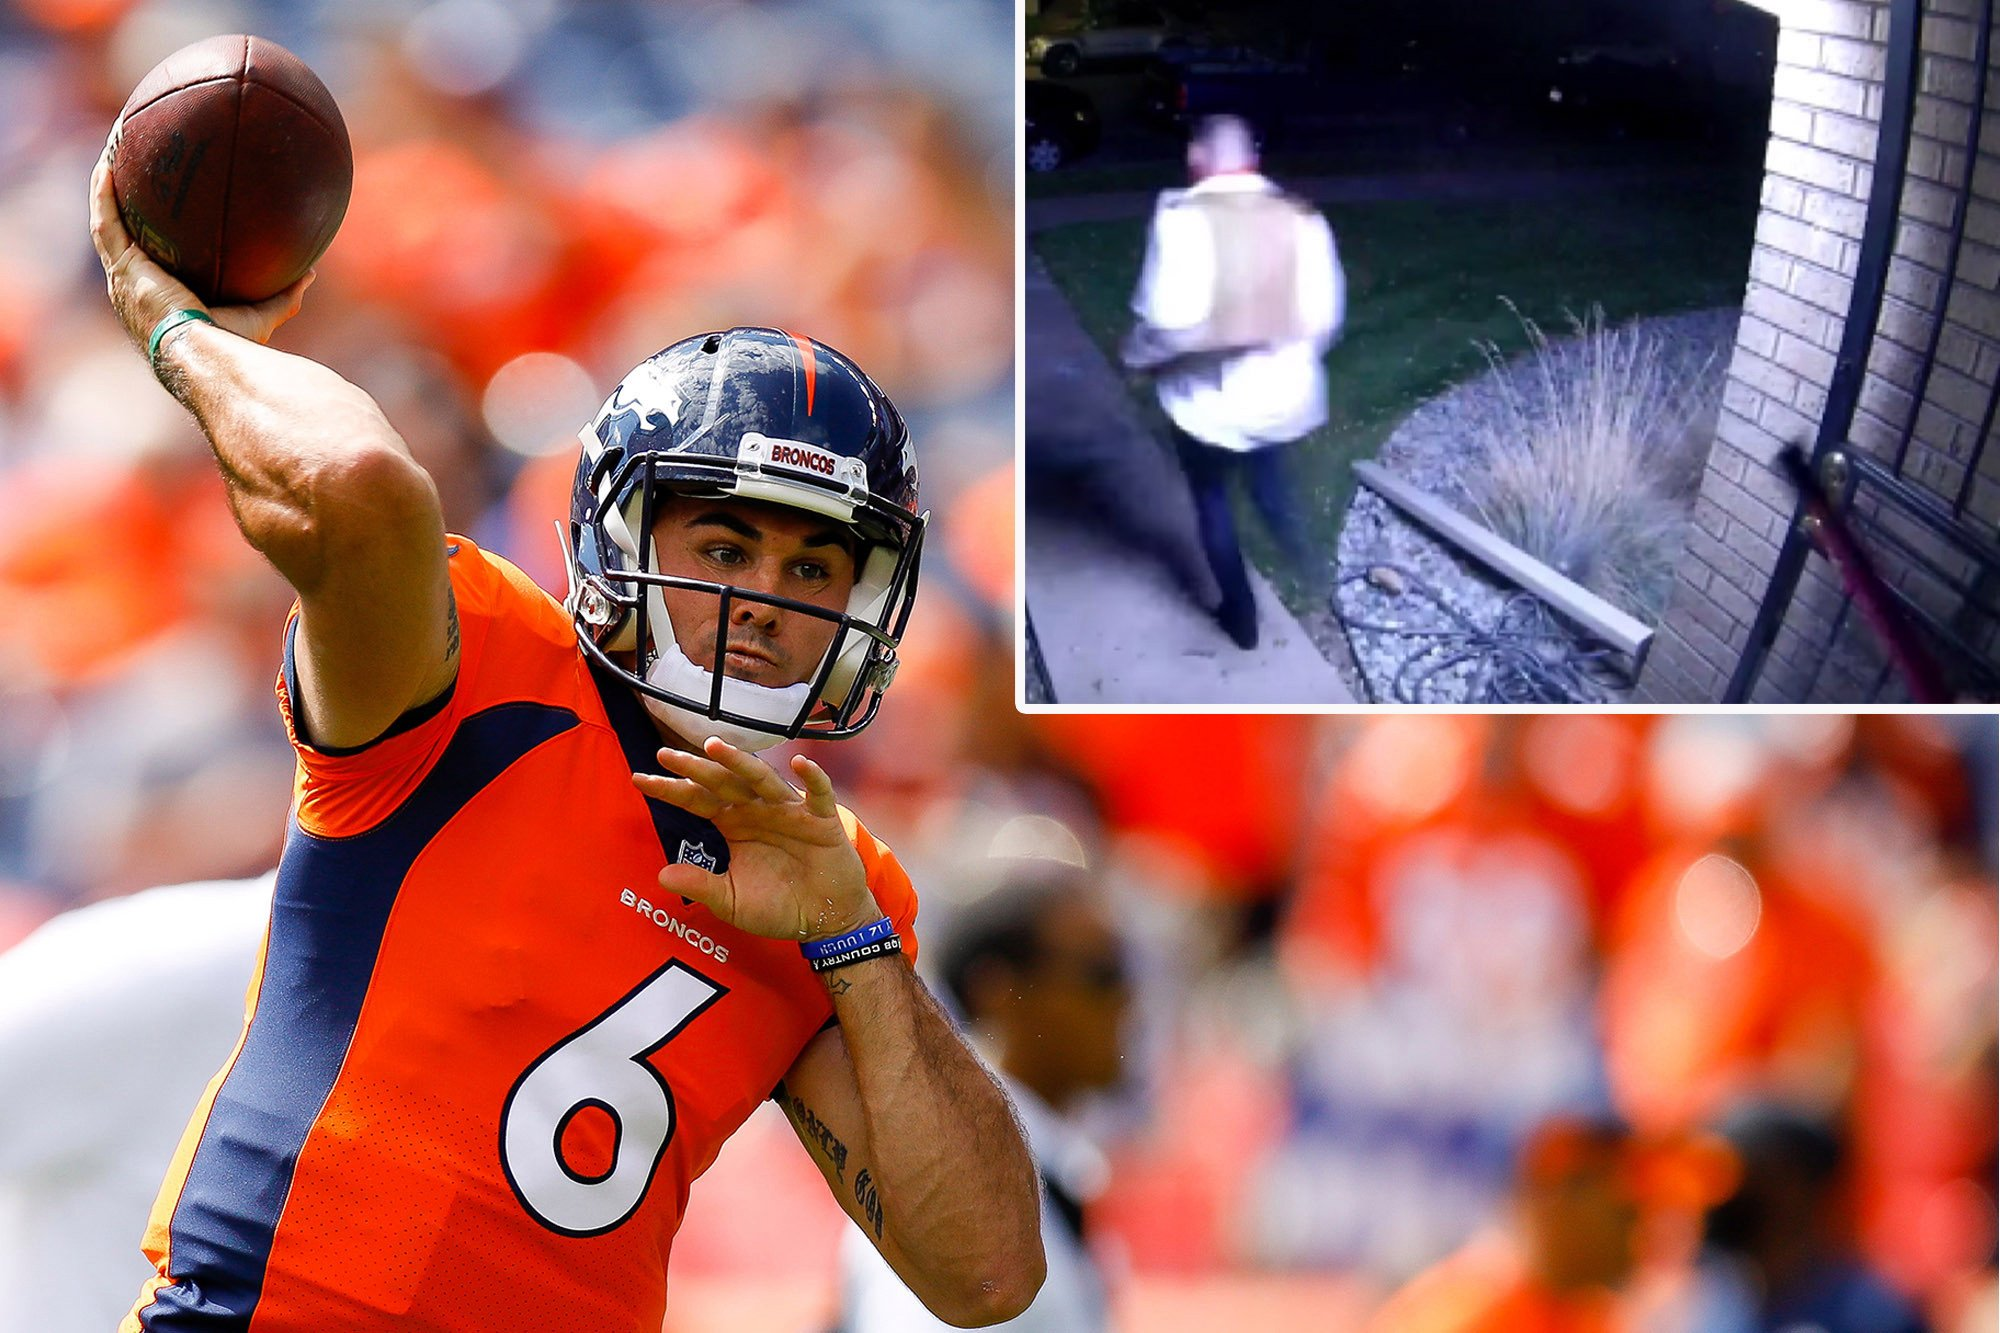 The moment Chad Kelly is chased from home with vacuum cleaner tube